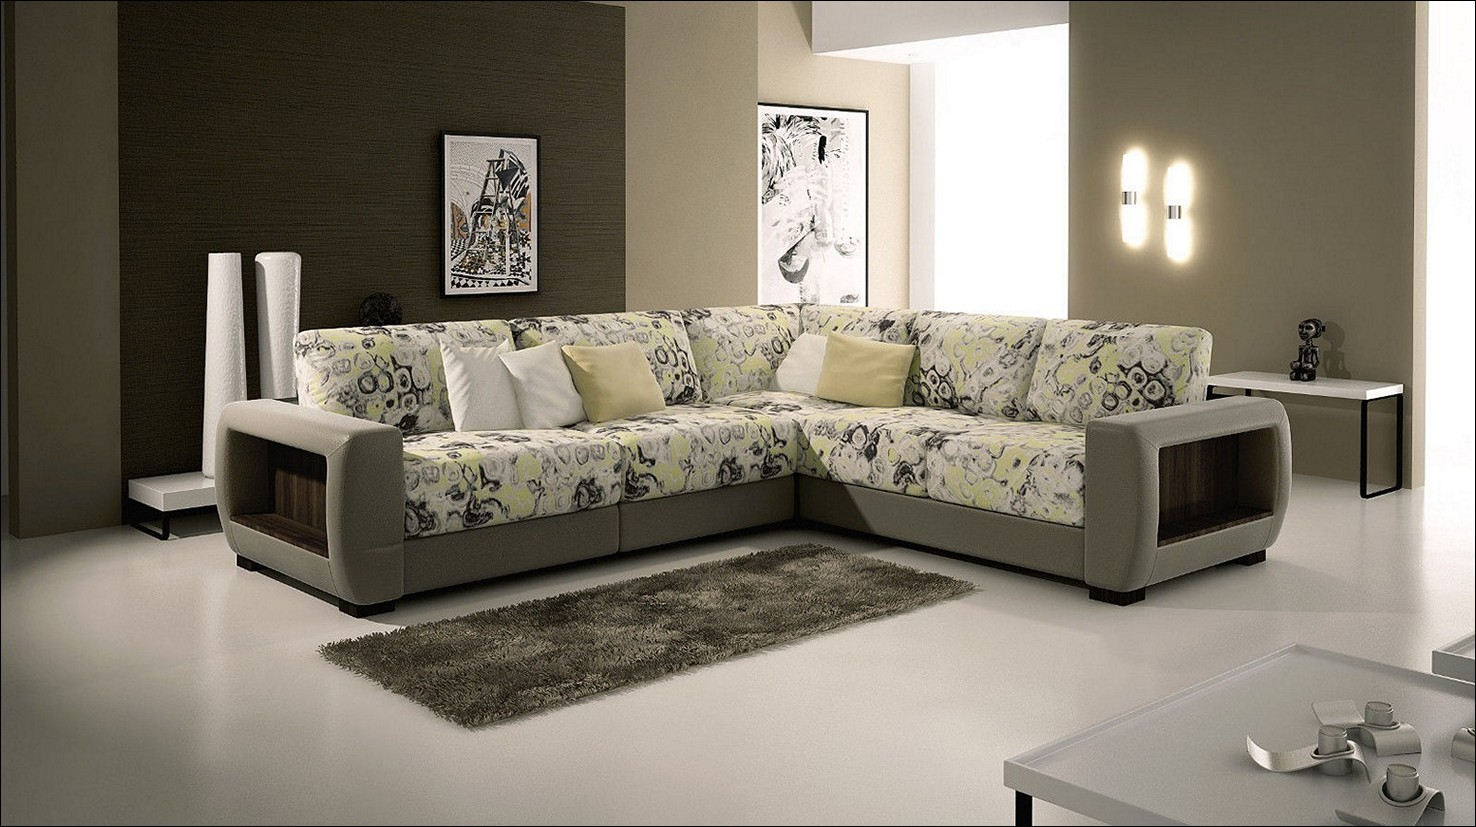 Wallpapers for Living Room Design Ideas in UK